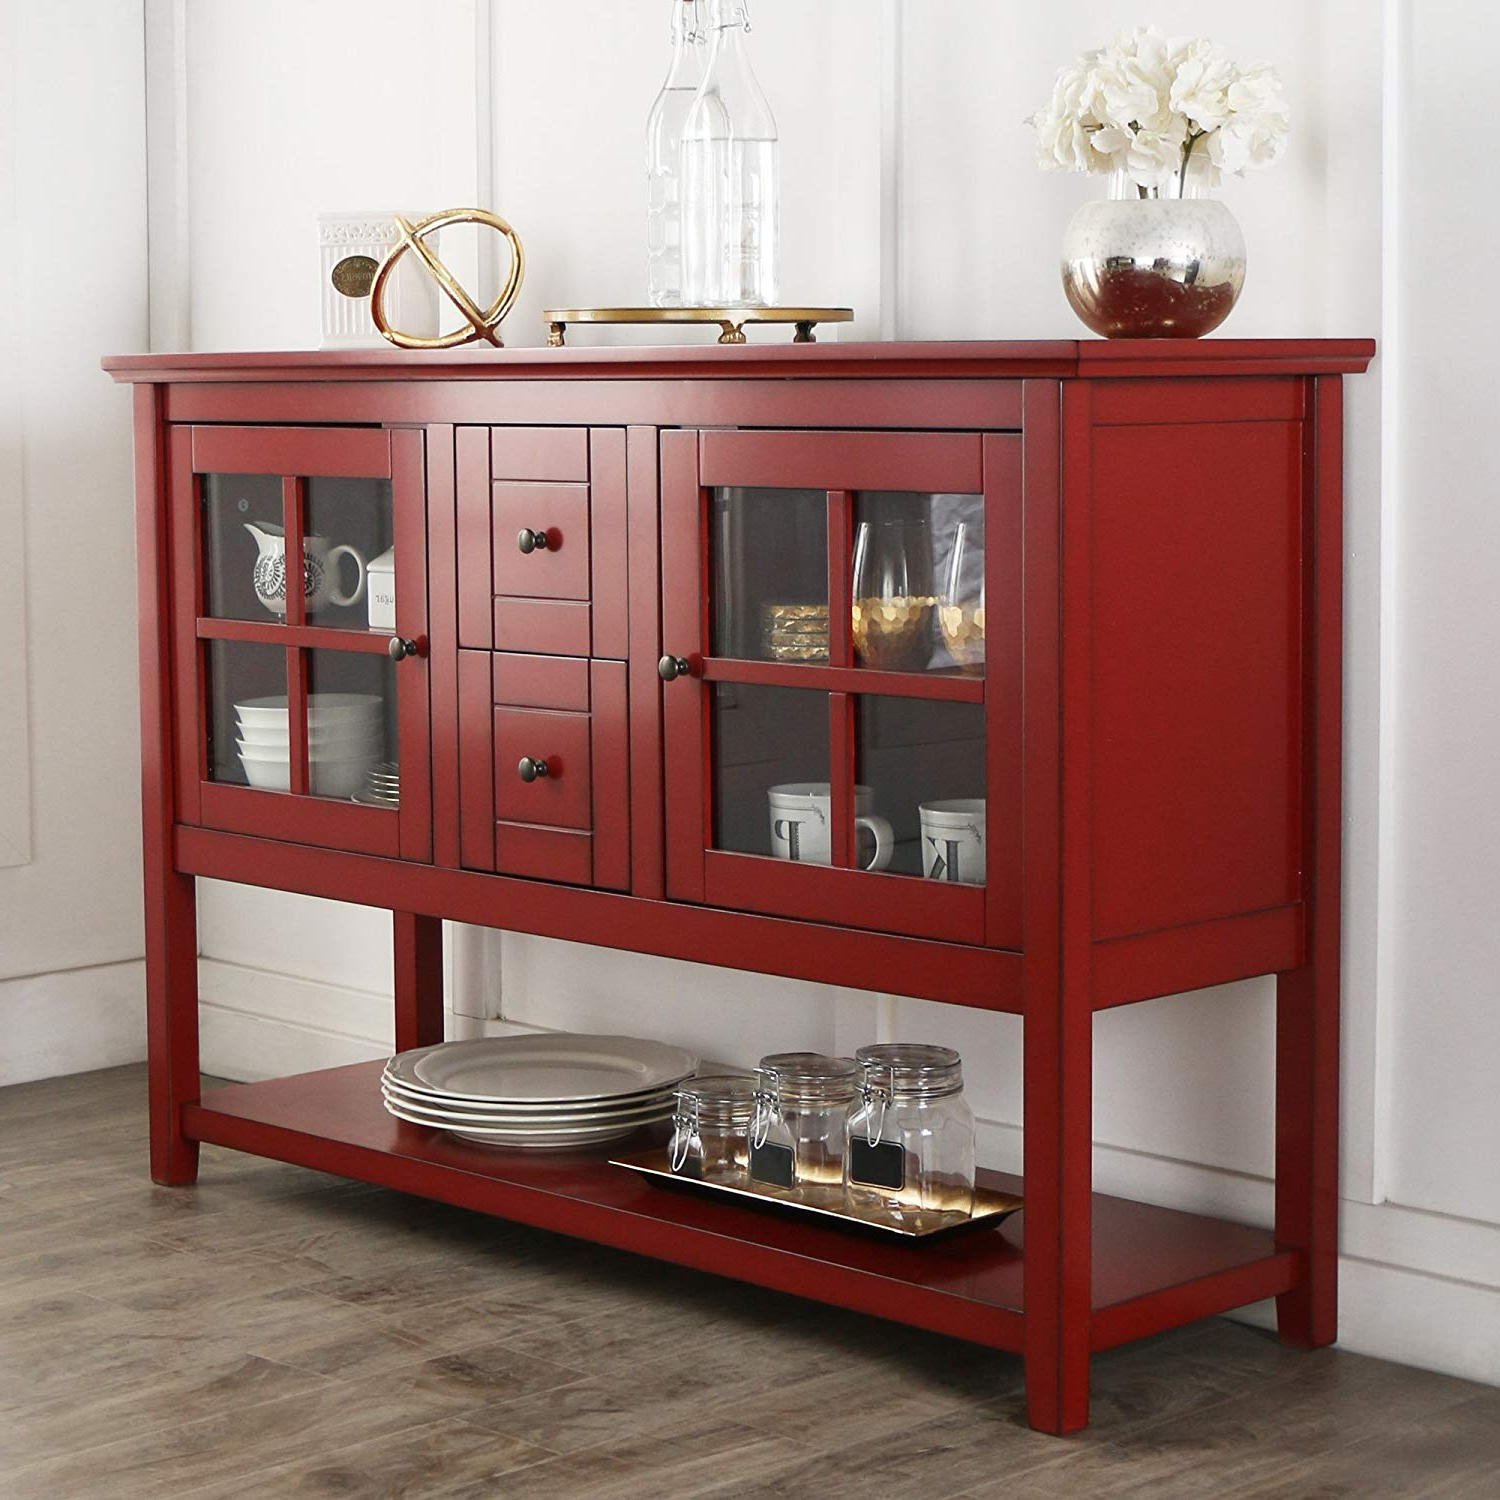 "Red Modern Tv Stands Inside Fashionable Amazon: We Furniture 52"" Console Table Wood Tv Stand Console (Gallery 6 of 20)"